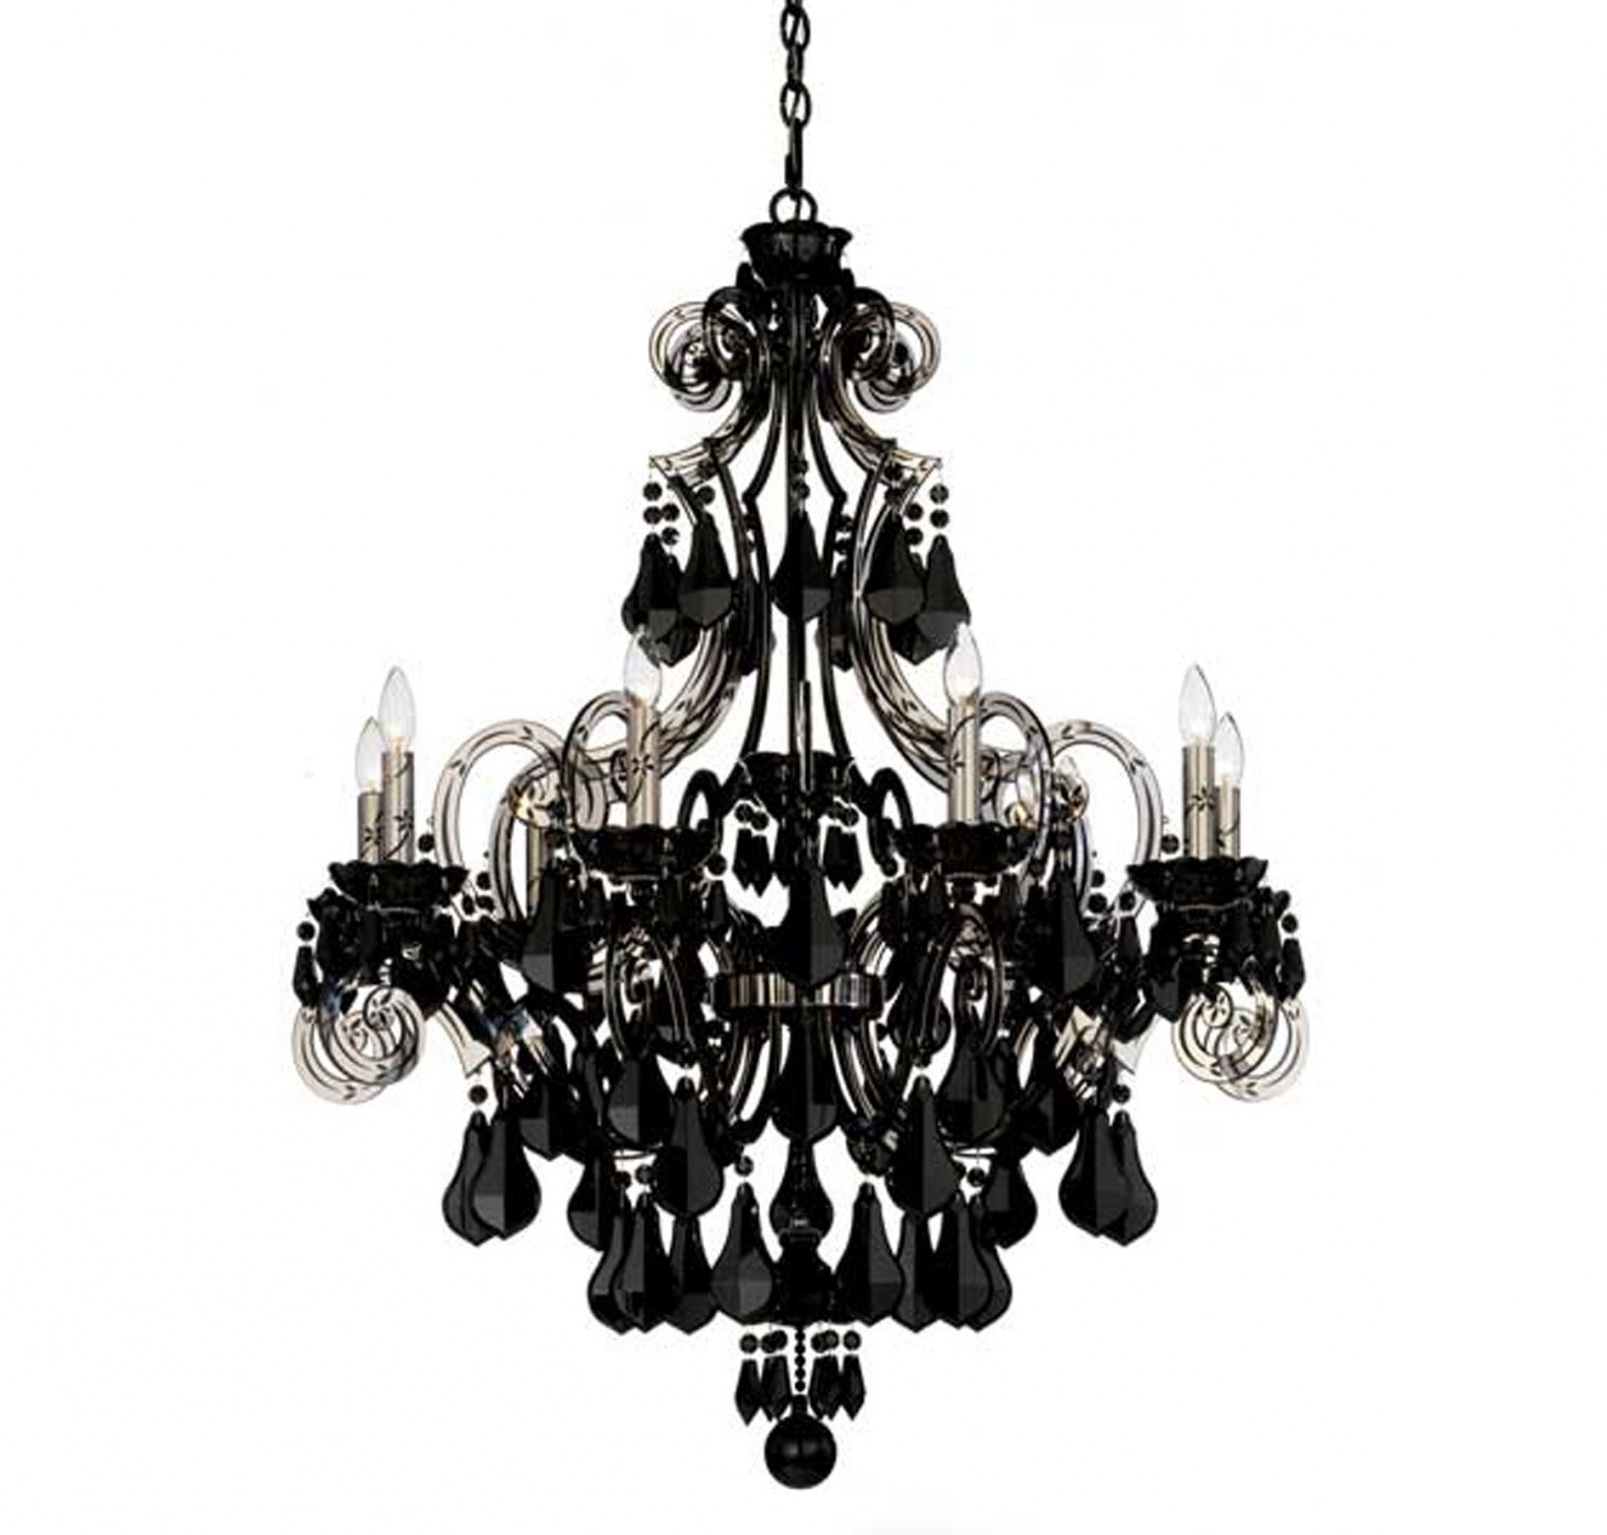 Most Recent Black Chandeliers For Photos: Schonbek Cappela 9 Light Black Chandelier In Chandeliers (View 15 of 20)